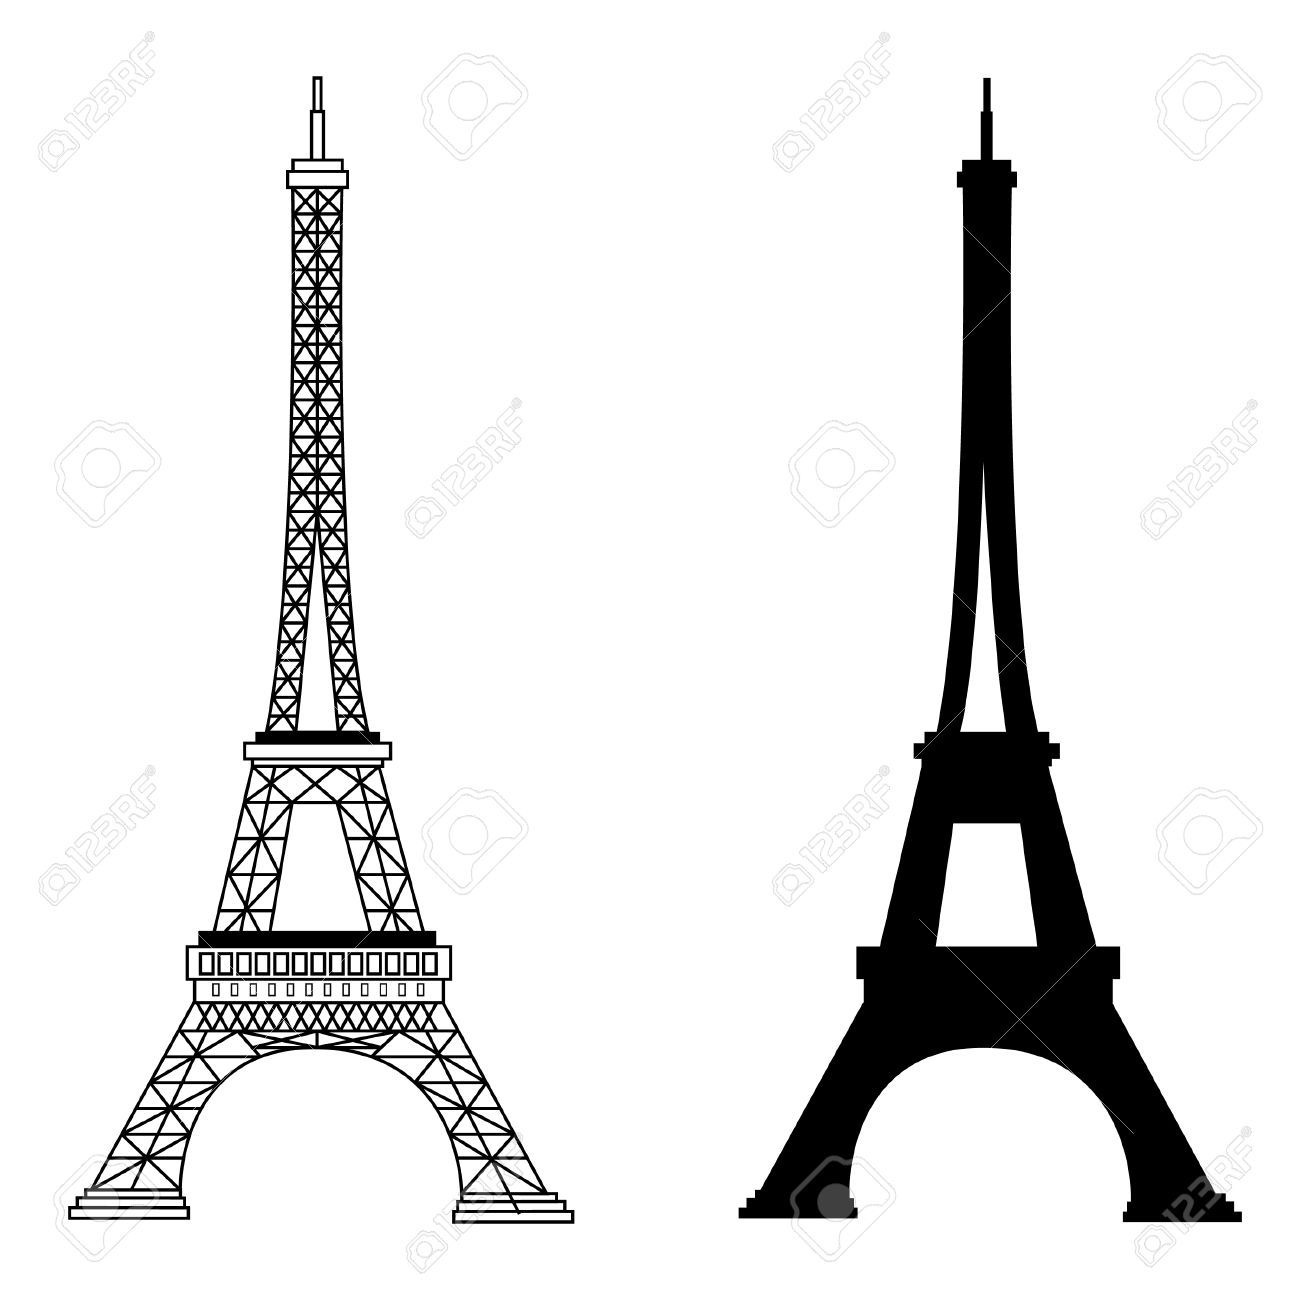 France famous construction eiffel tower vector illustration france famous construction eiffel tower vector illustration black silhouette and outline drawing stock vector thecheapjerseys Gallery